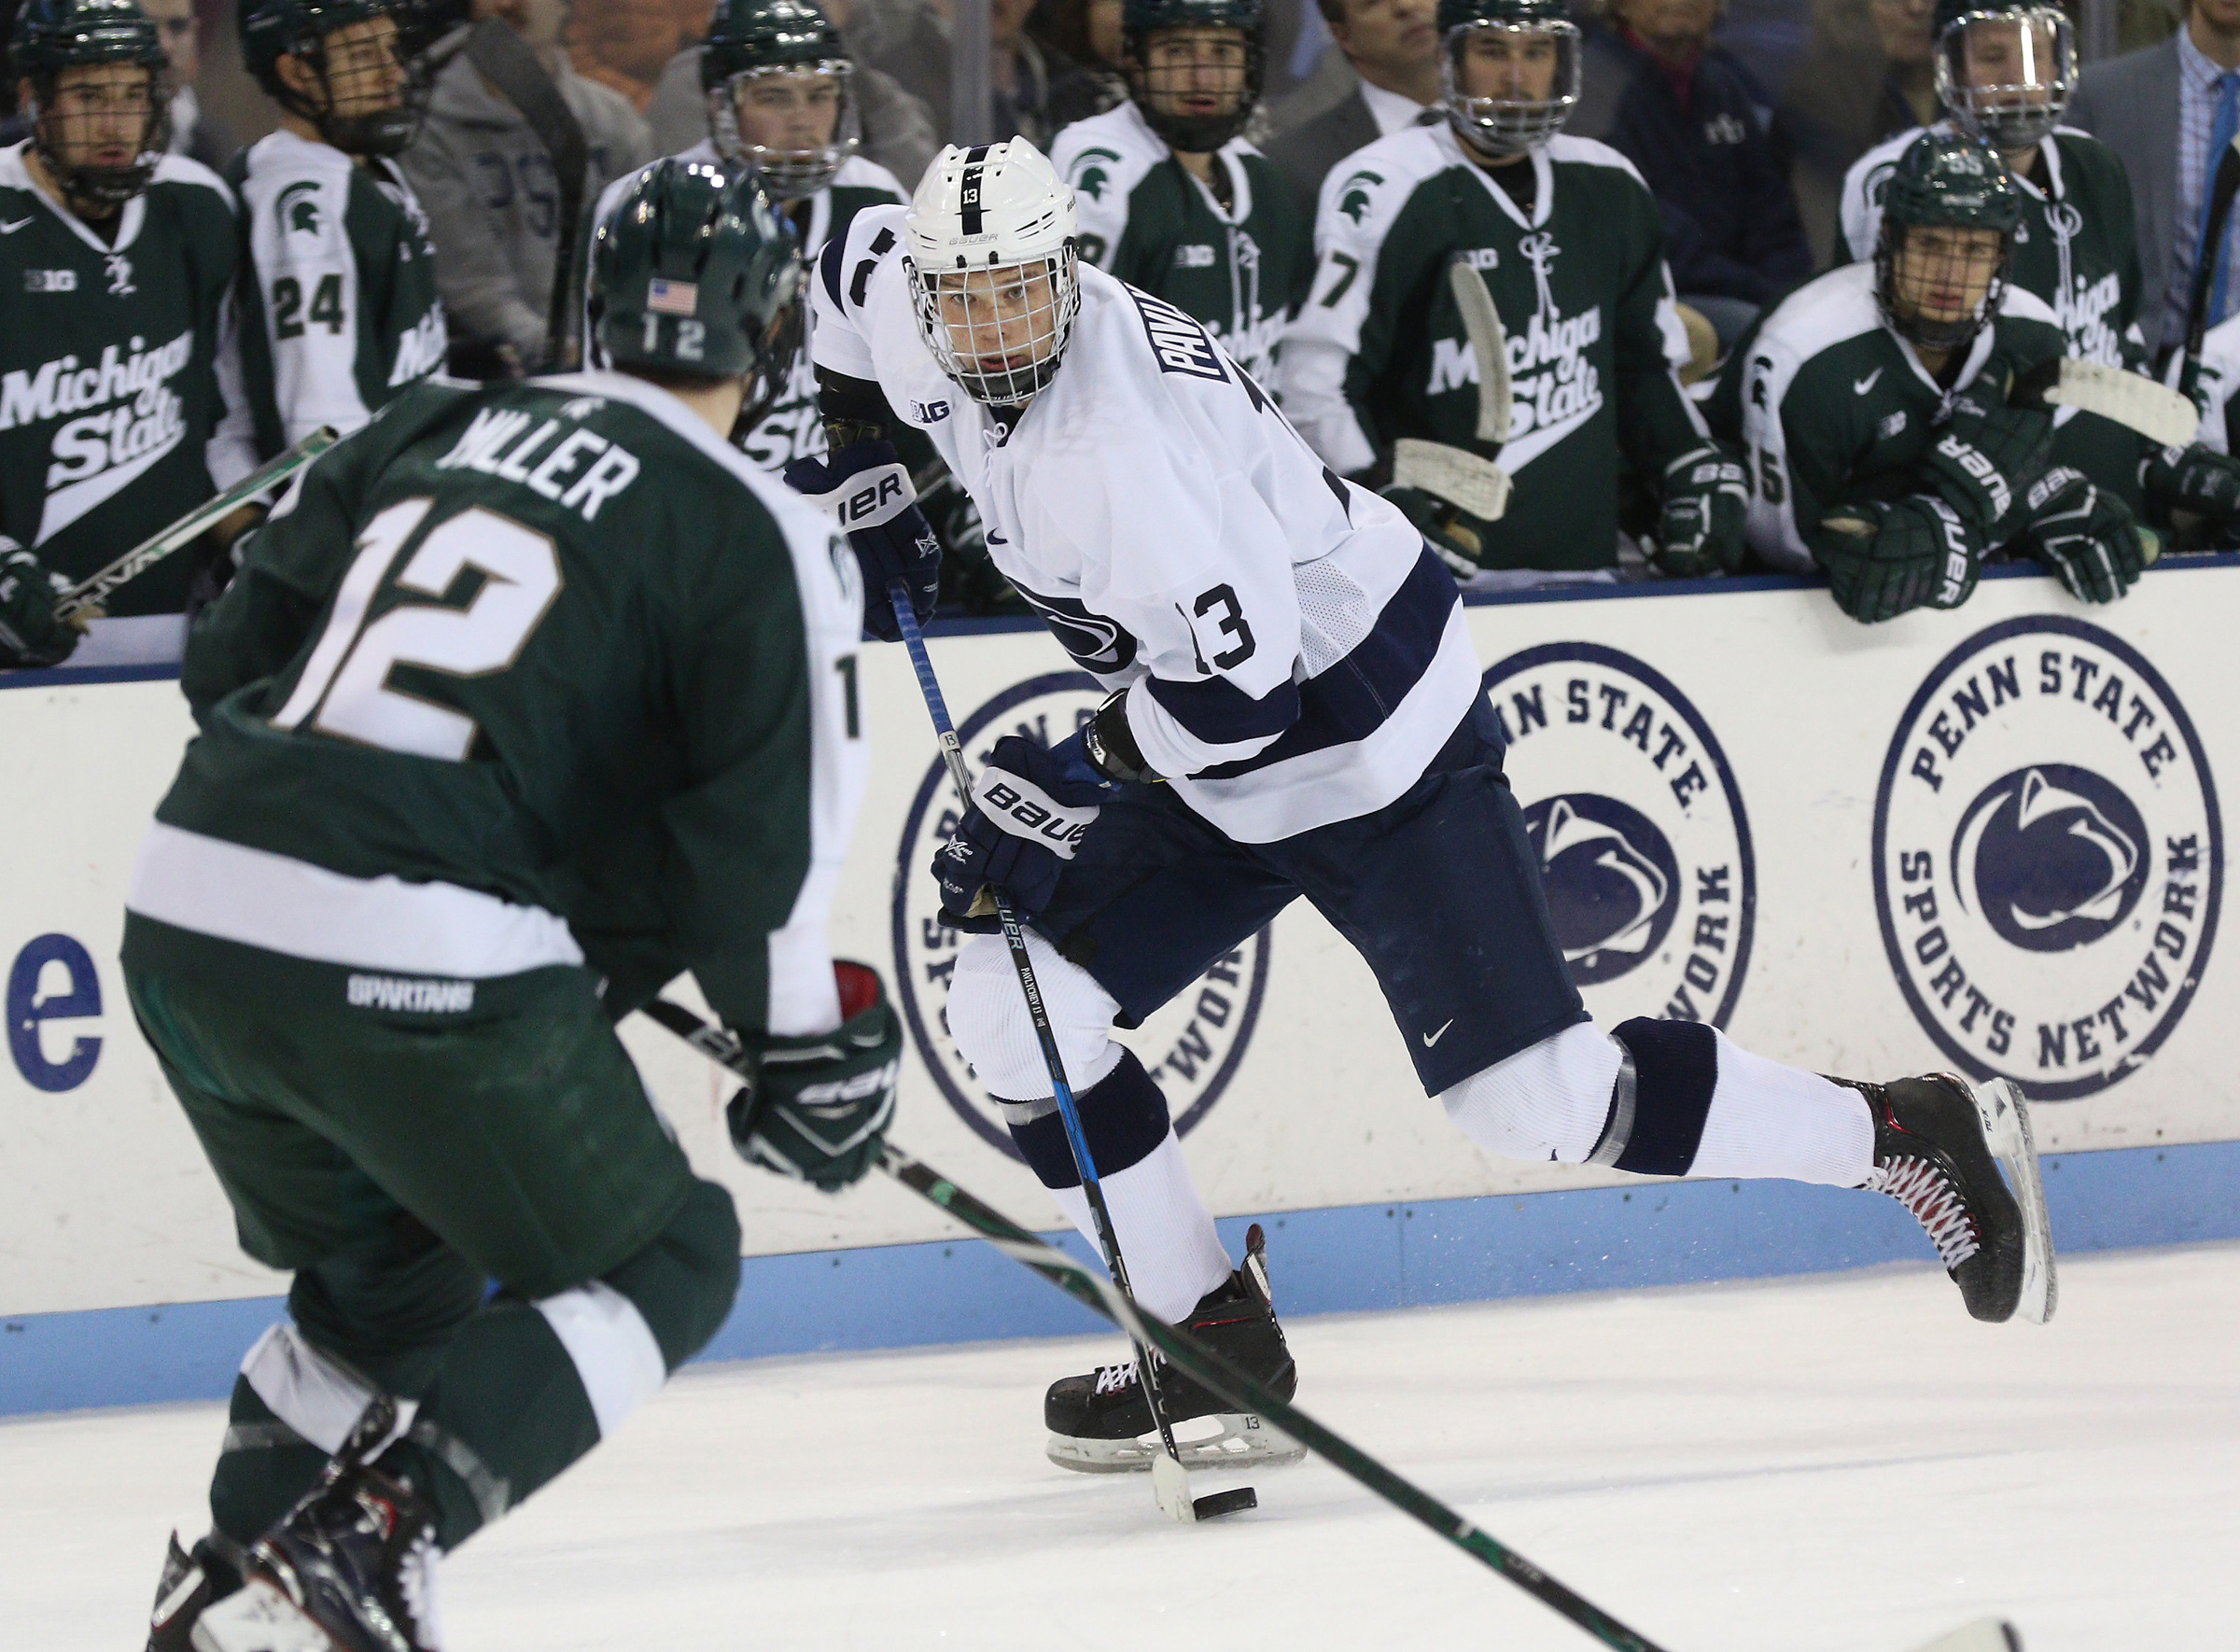 Penn State´s Nikita Pavlychev (13) carrying the puck against Michigan State on Nov. 24, 2017.